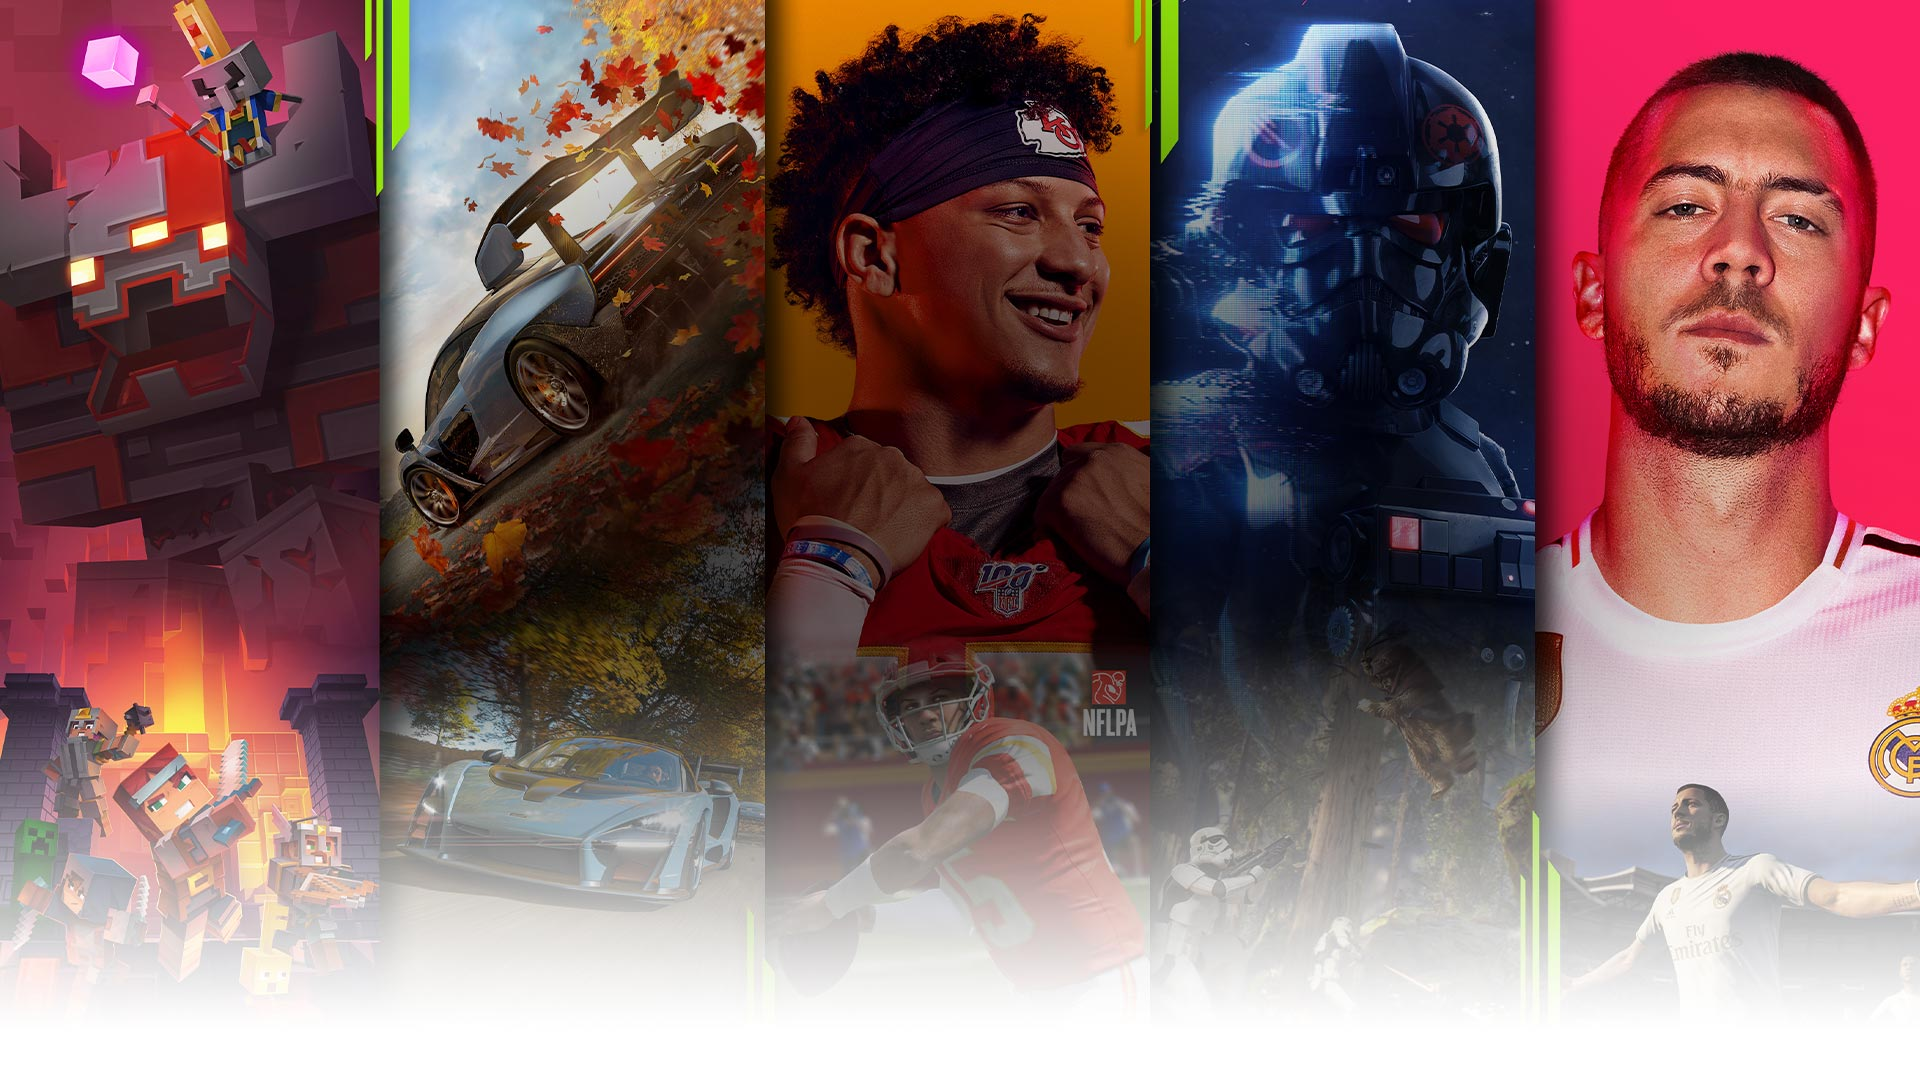 Mosaic of Minecraft, Forza, Madden 20, Battlefront 2, and FIFA 20